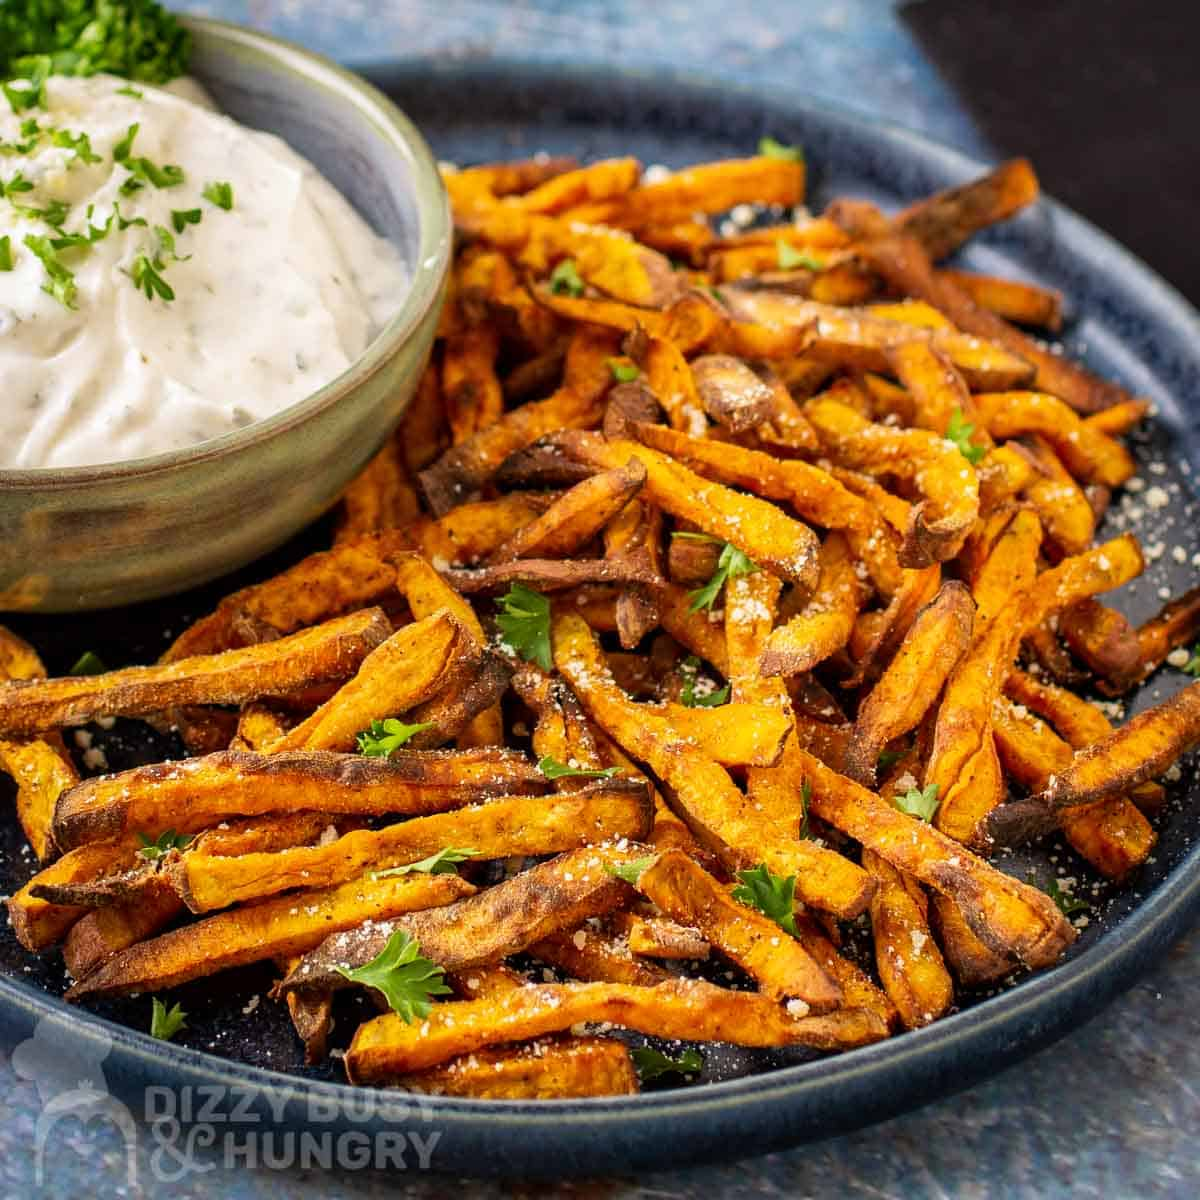 Close up view of the air fried sweet potato fries on a blue ceramic dish on a blue surface with a black napkin in the upper right corner.